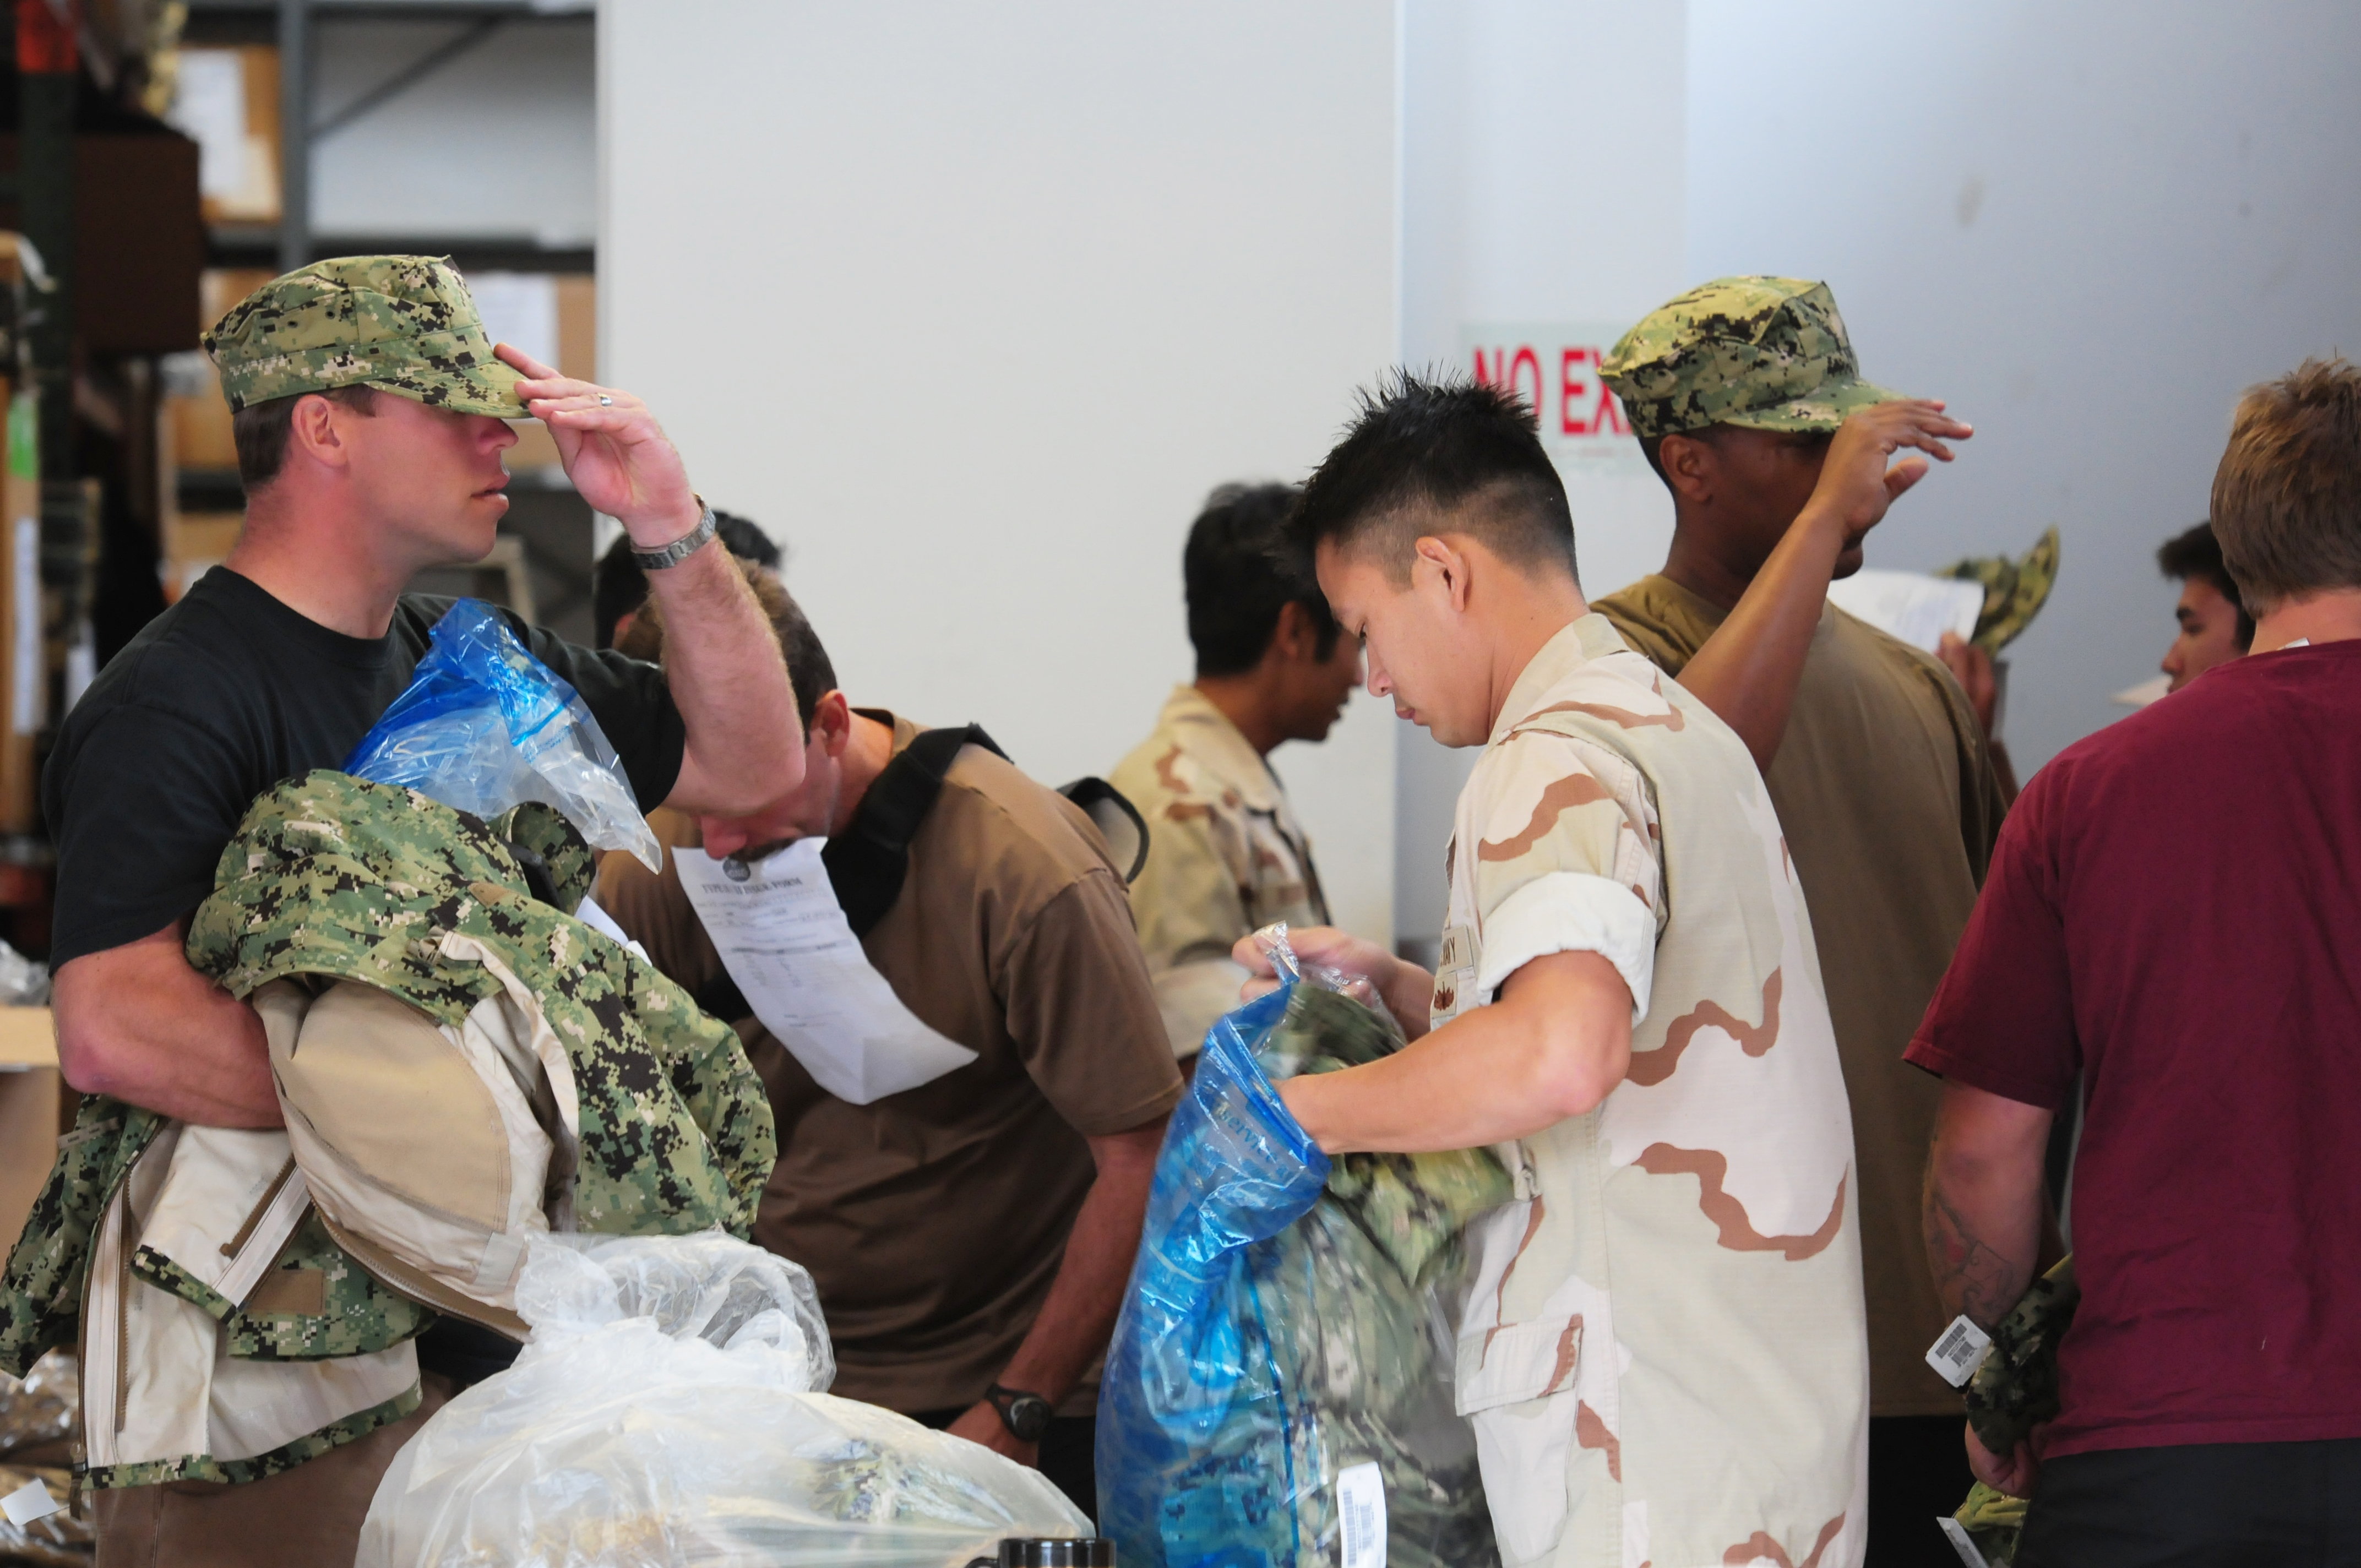 Every sailor is getting a new camouflage uniform